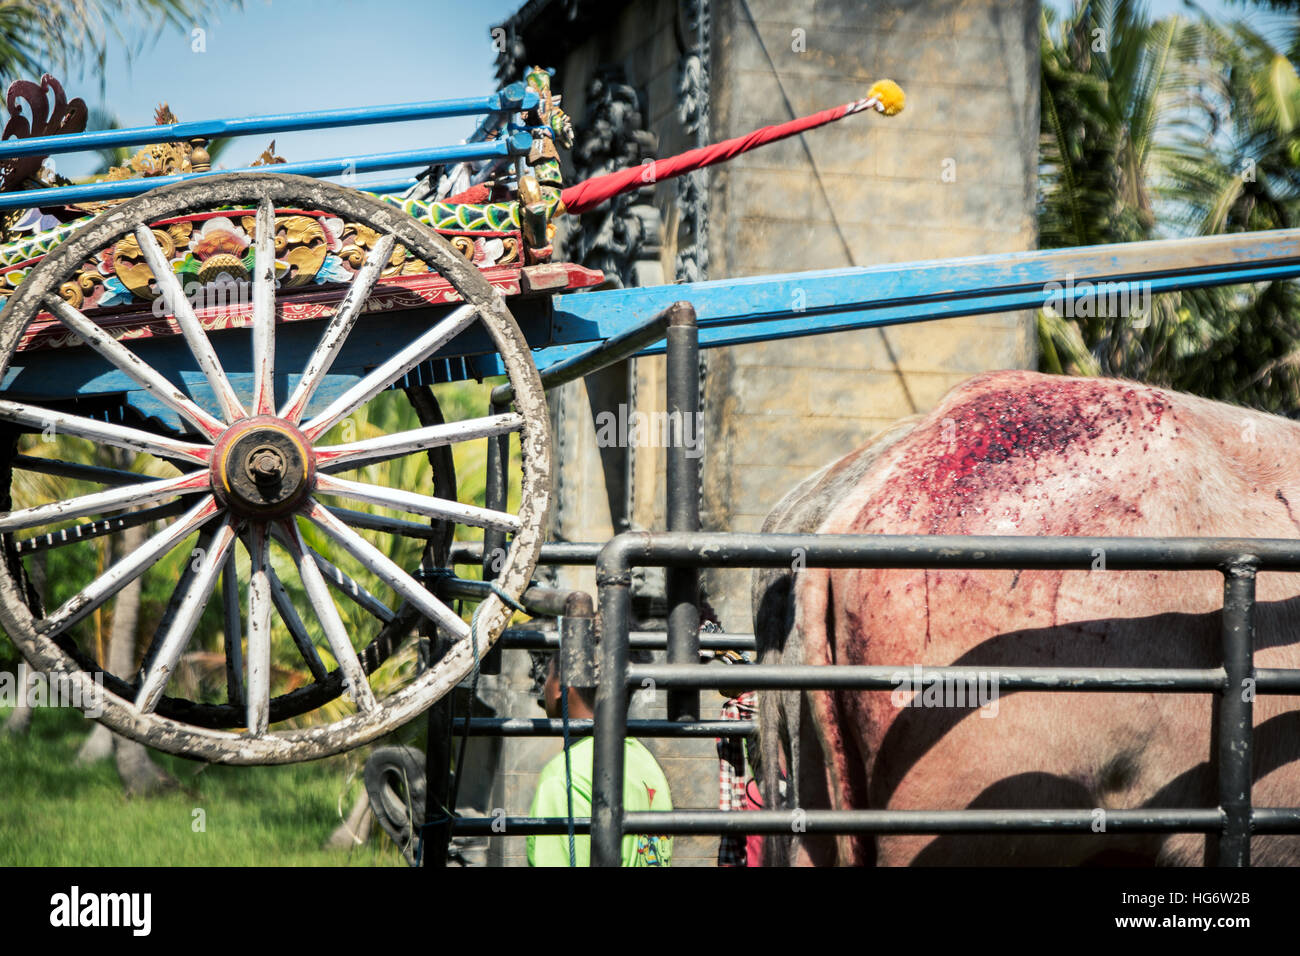 Buffalo wounded after finishing the Makepung race meet at Jembrana in Bali - Stock Image